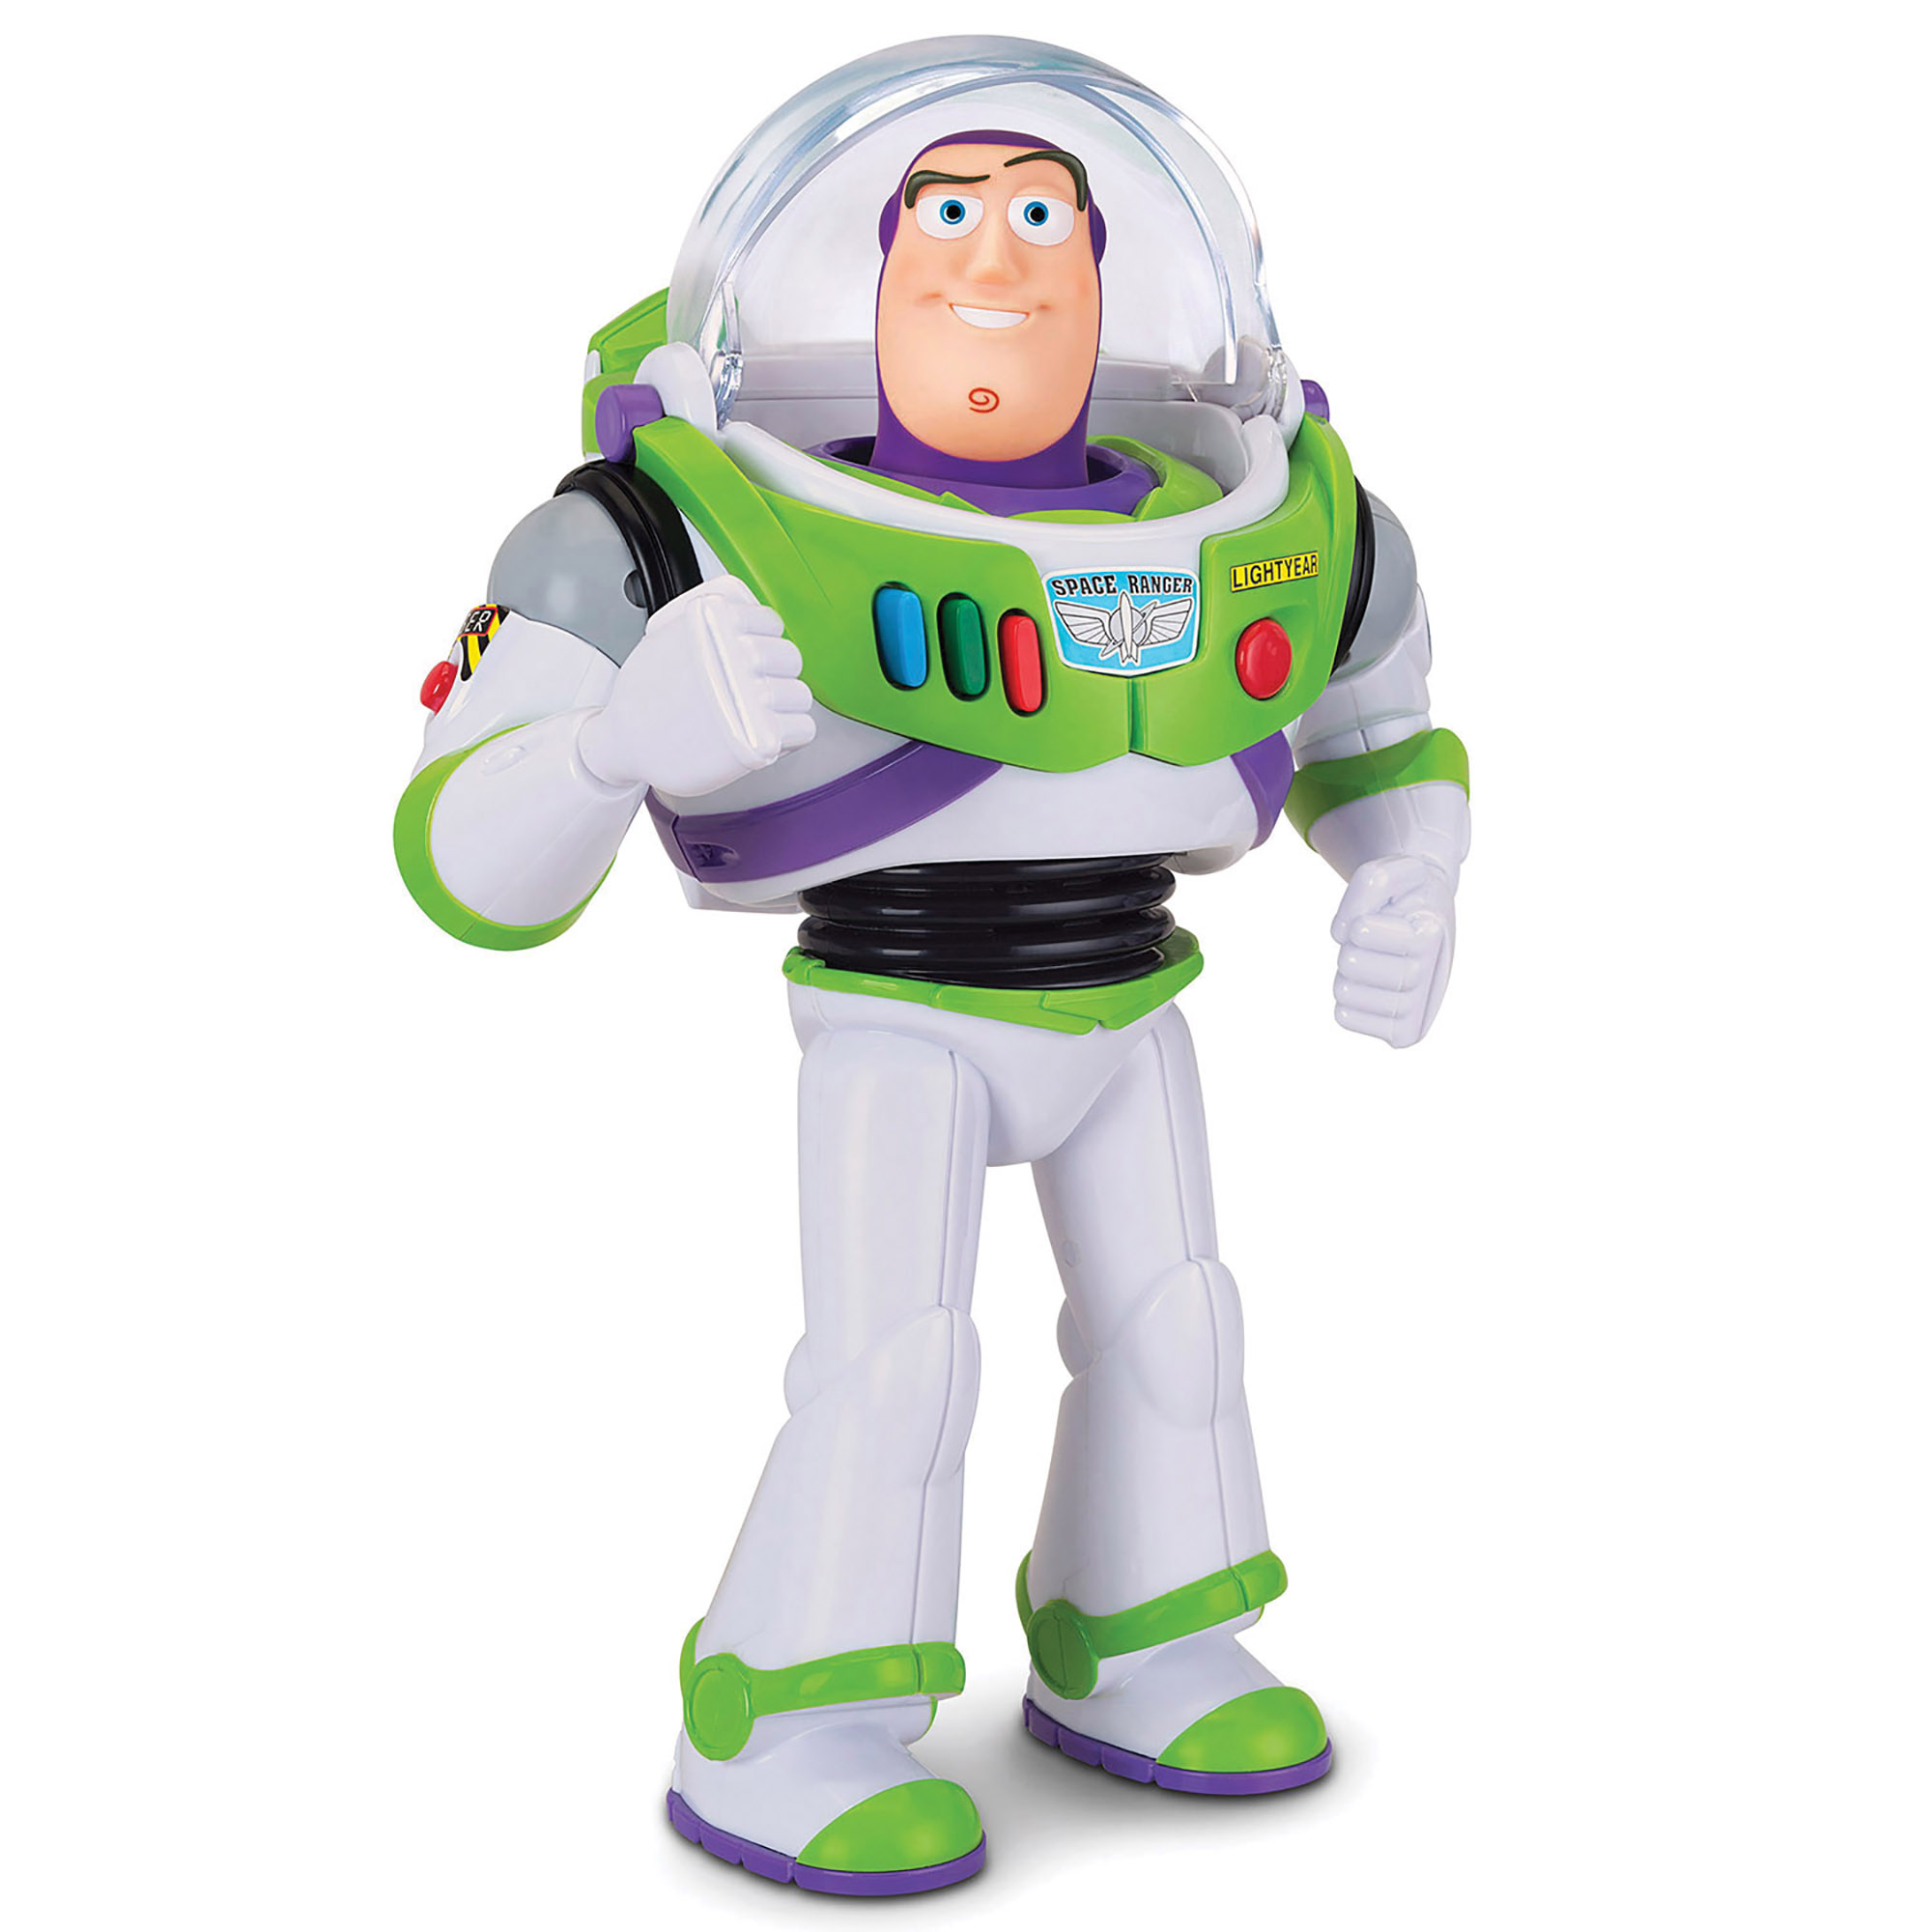 Picture of Toy Story 4 Buzz Lightyear Talking Action Figure